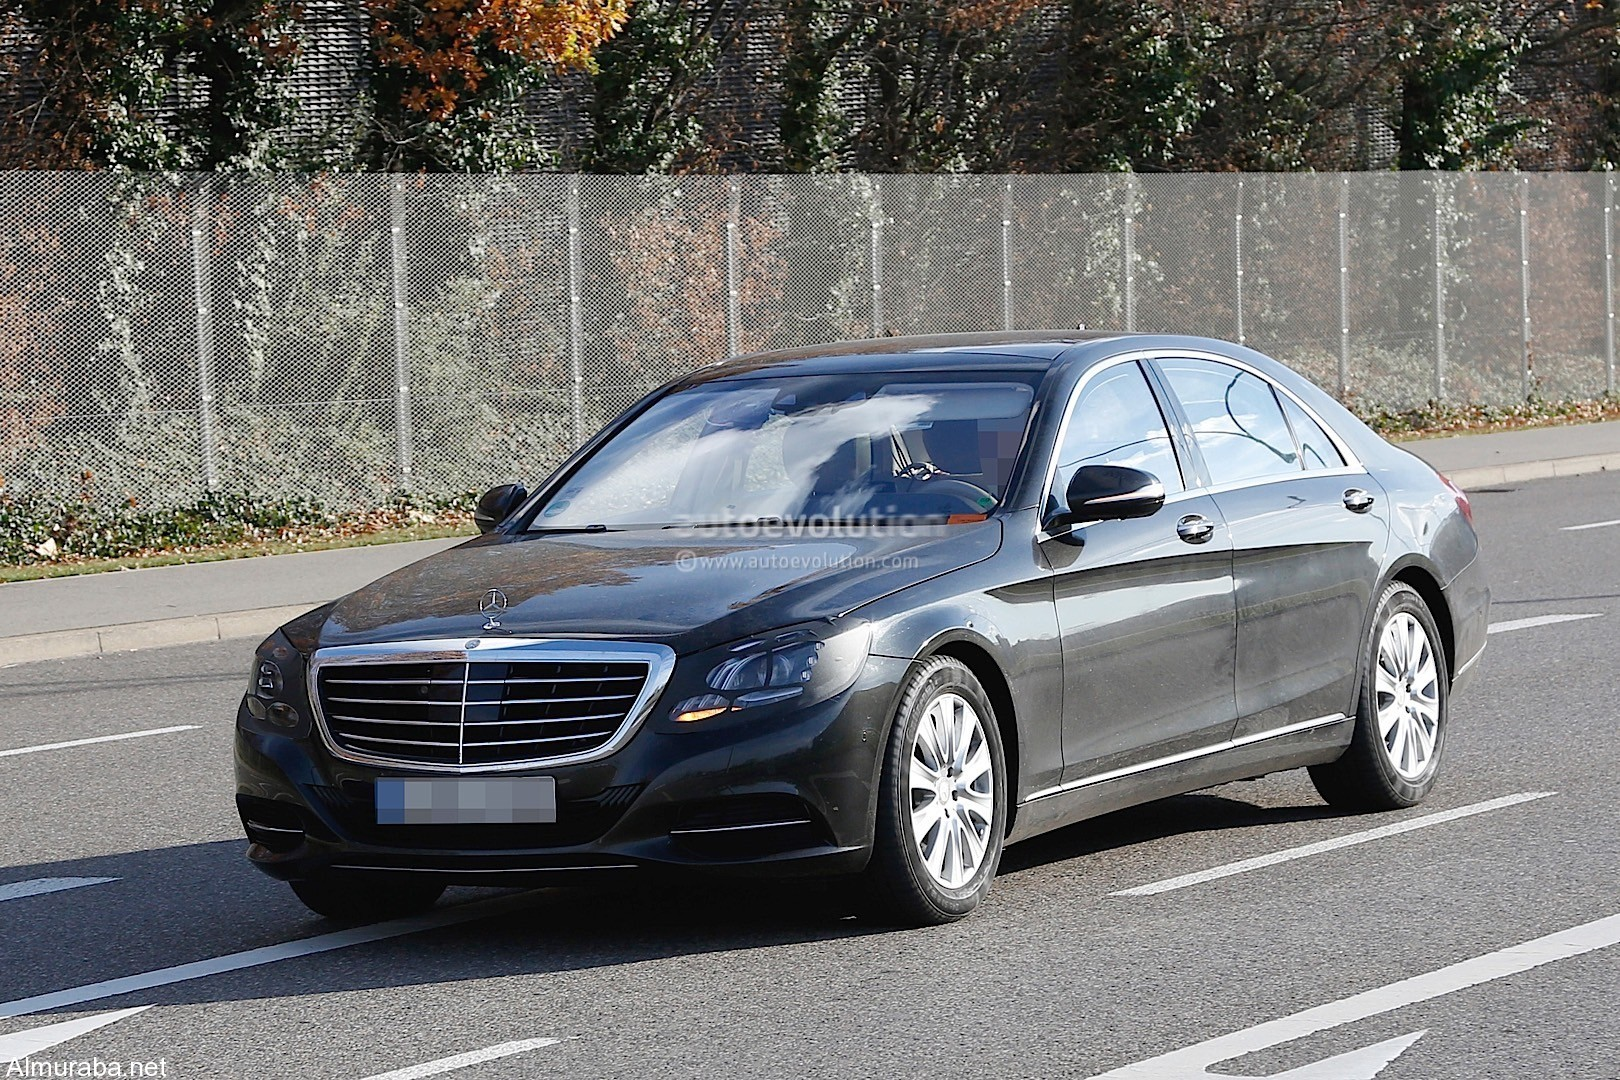 2018-mercedes-benz-s-class-facelift-spied-for-the-first-time-showing-minor-changes_6